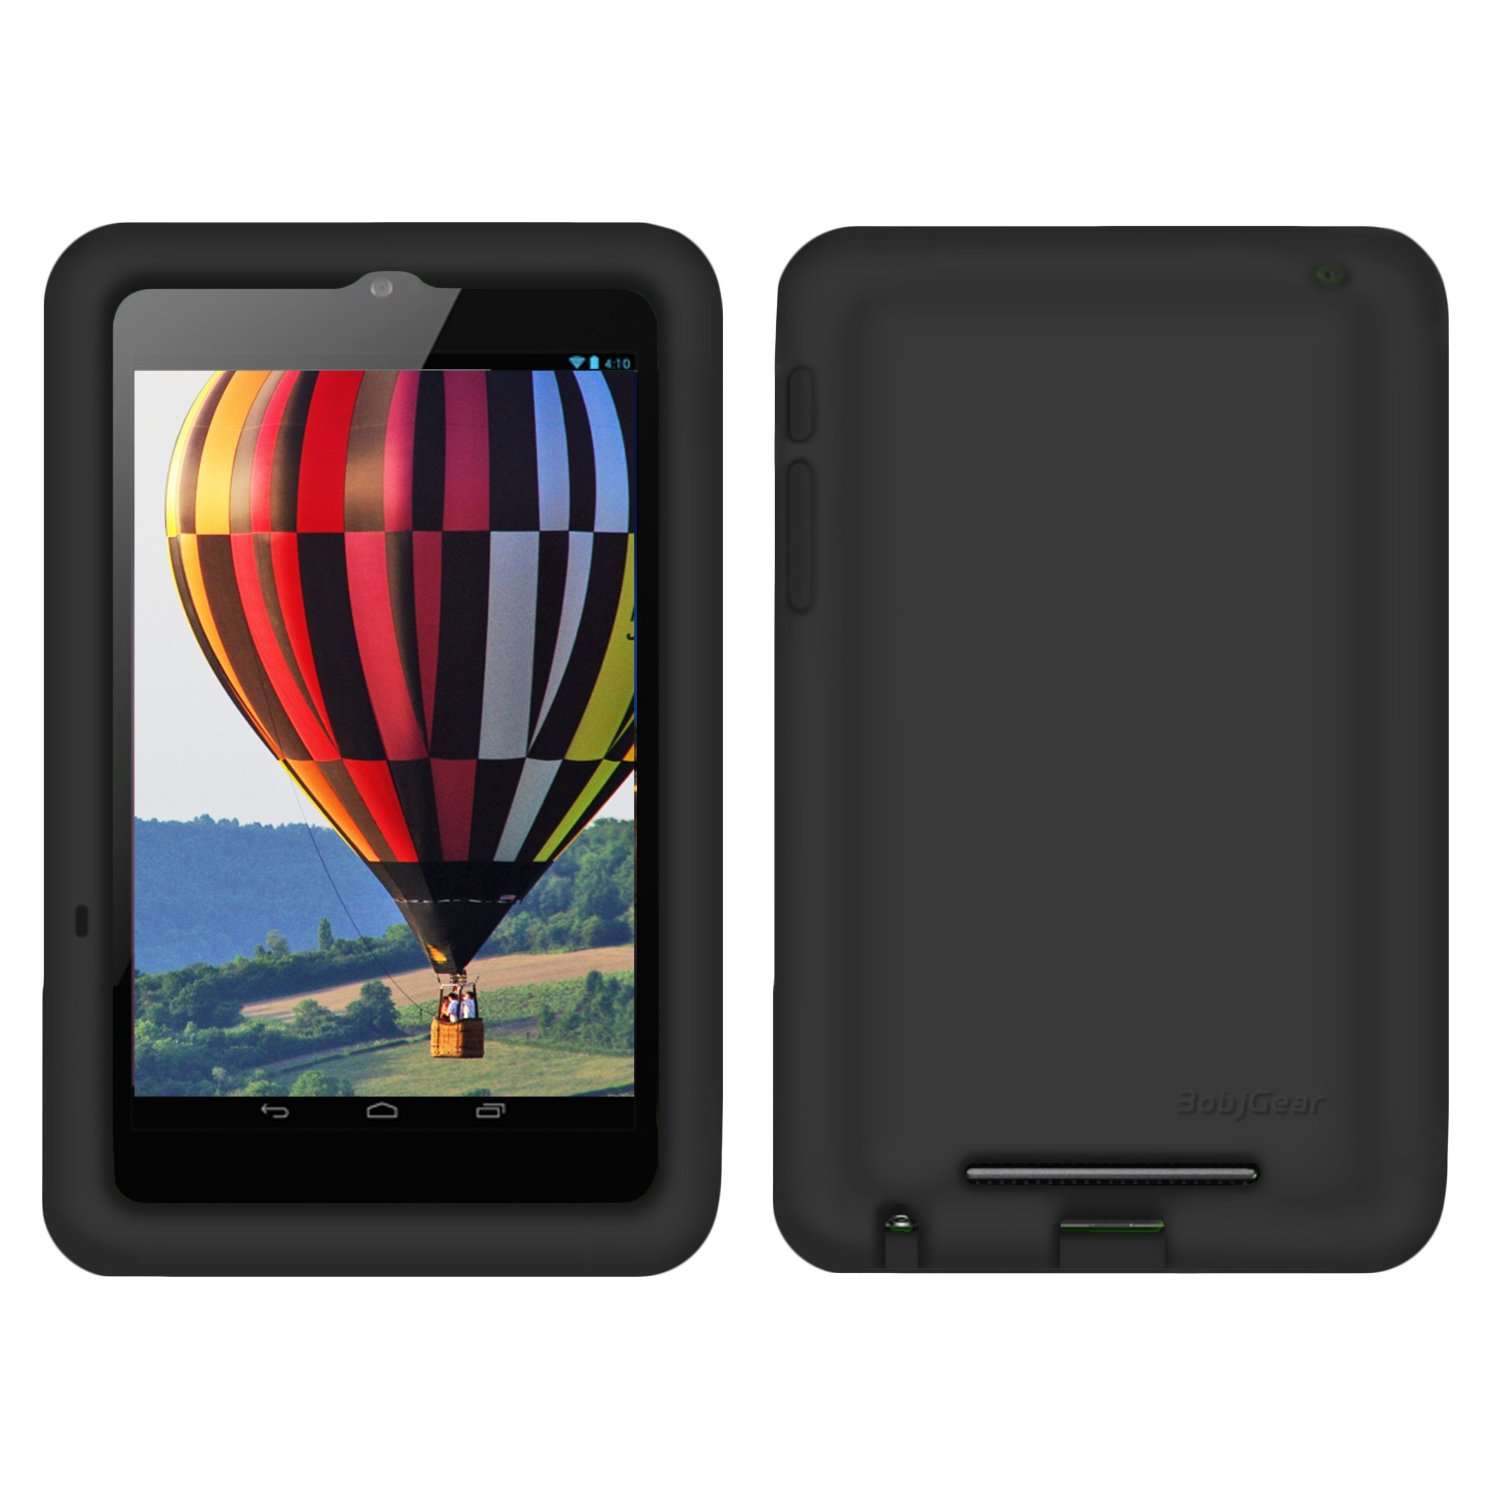 Silicone Rugged Cover Google Nexus 7 2012 Version Inch (Not FHD 2013 V)-Shockproof Kids Protection Case - szbjtech store